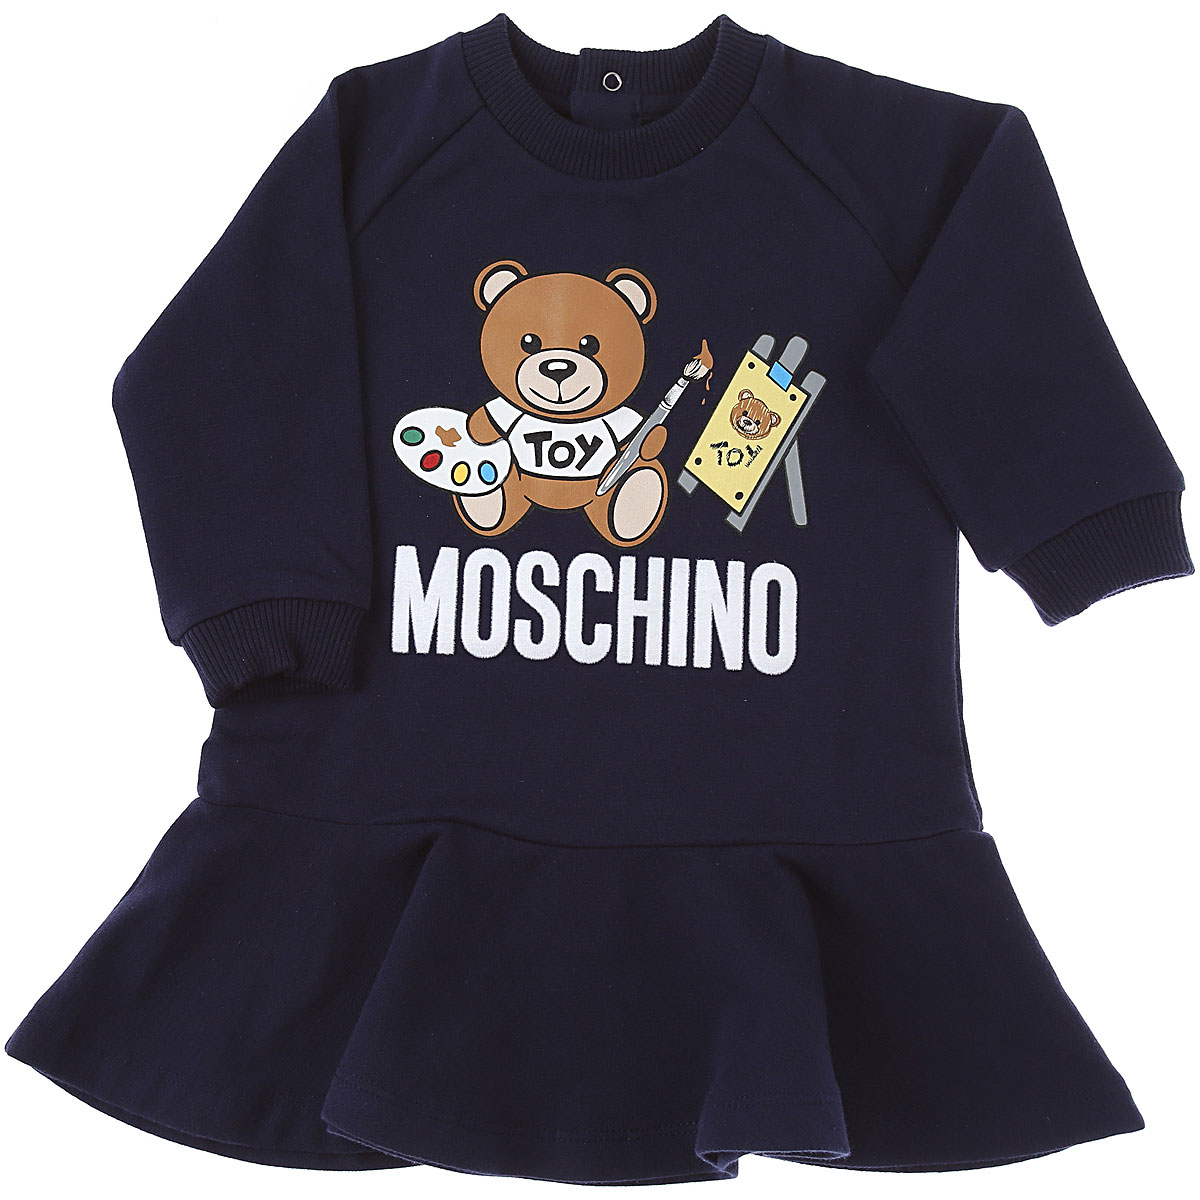 Moschino Baby Dress for Girls On Sale, Navy Blue, Cotton, 2019, 12M 18M 24M 2Y 3Y 9M